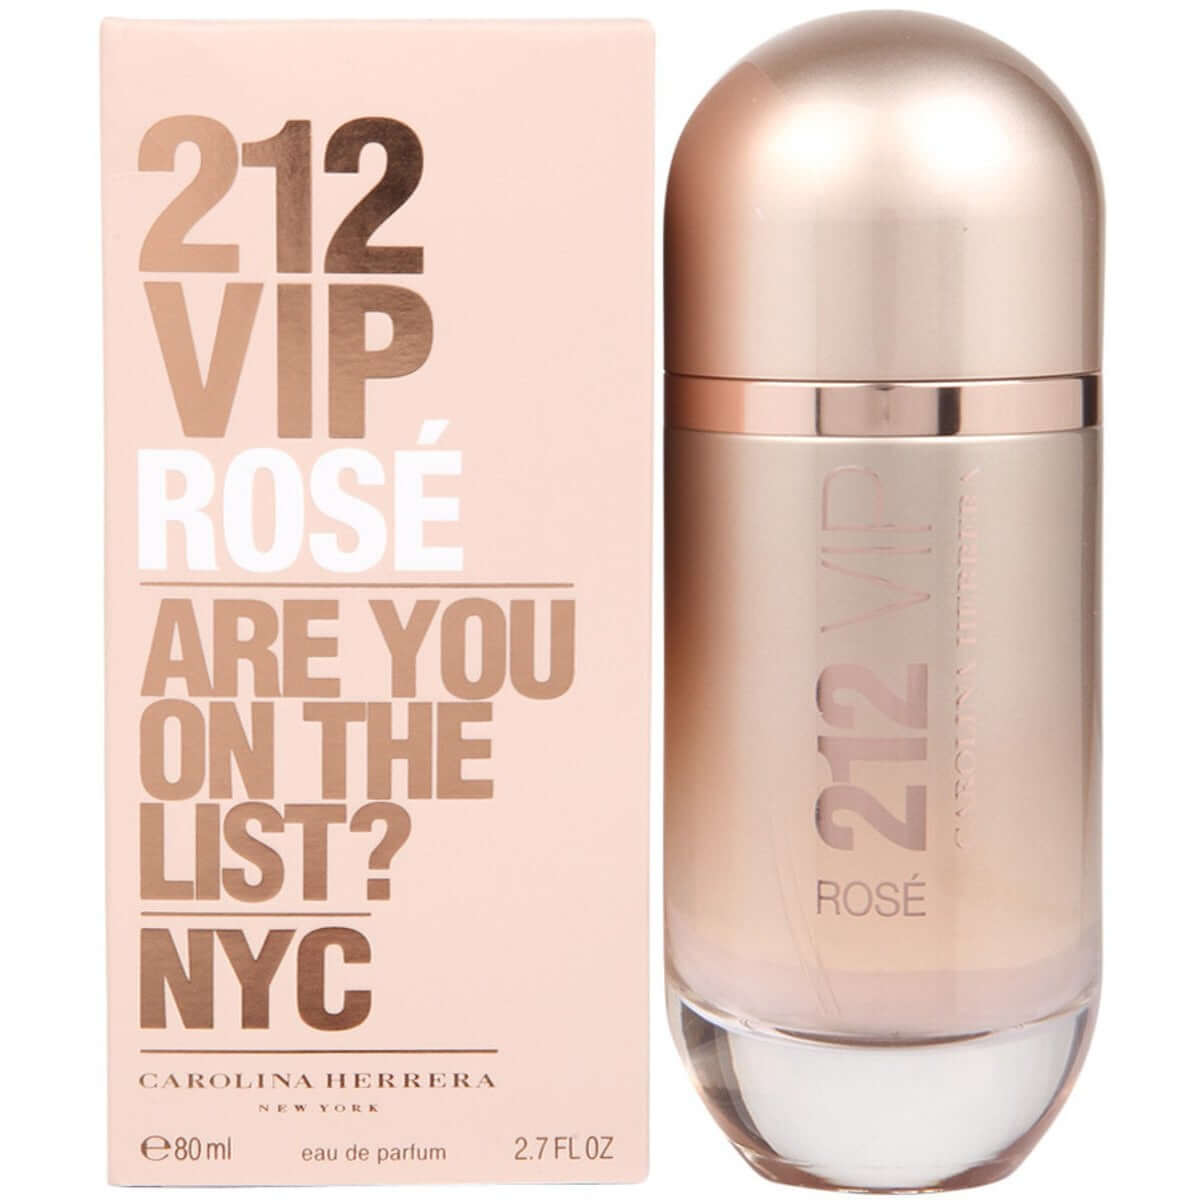 212 VIP ROSE by Carolina Herrera perfume for her EDP 2.7 oz New in box